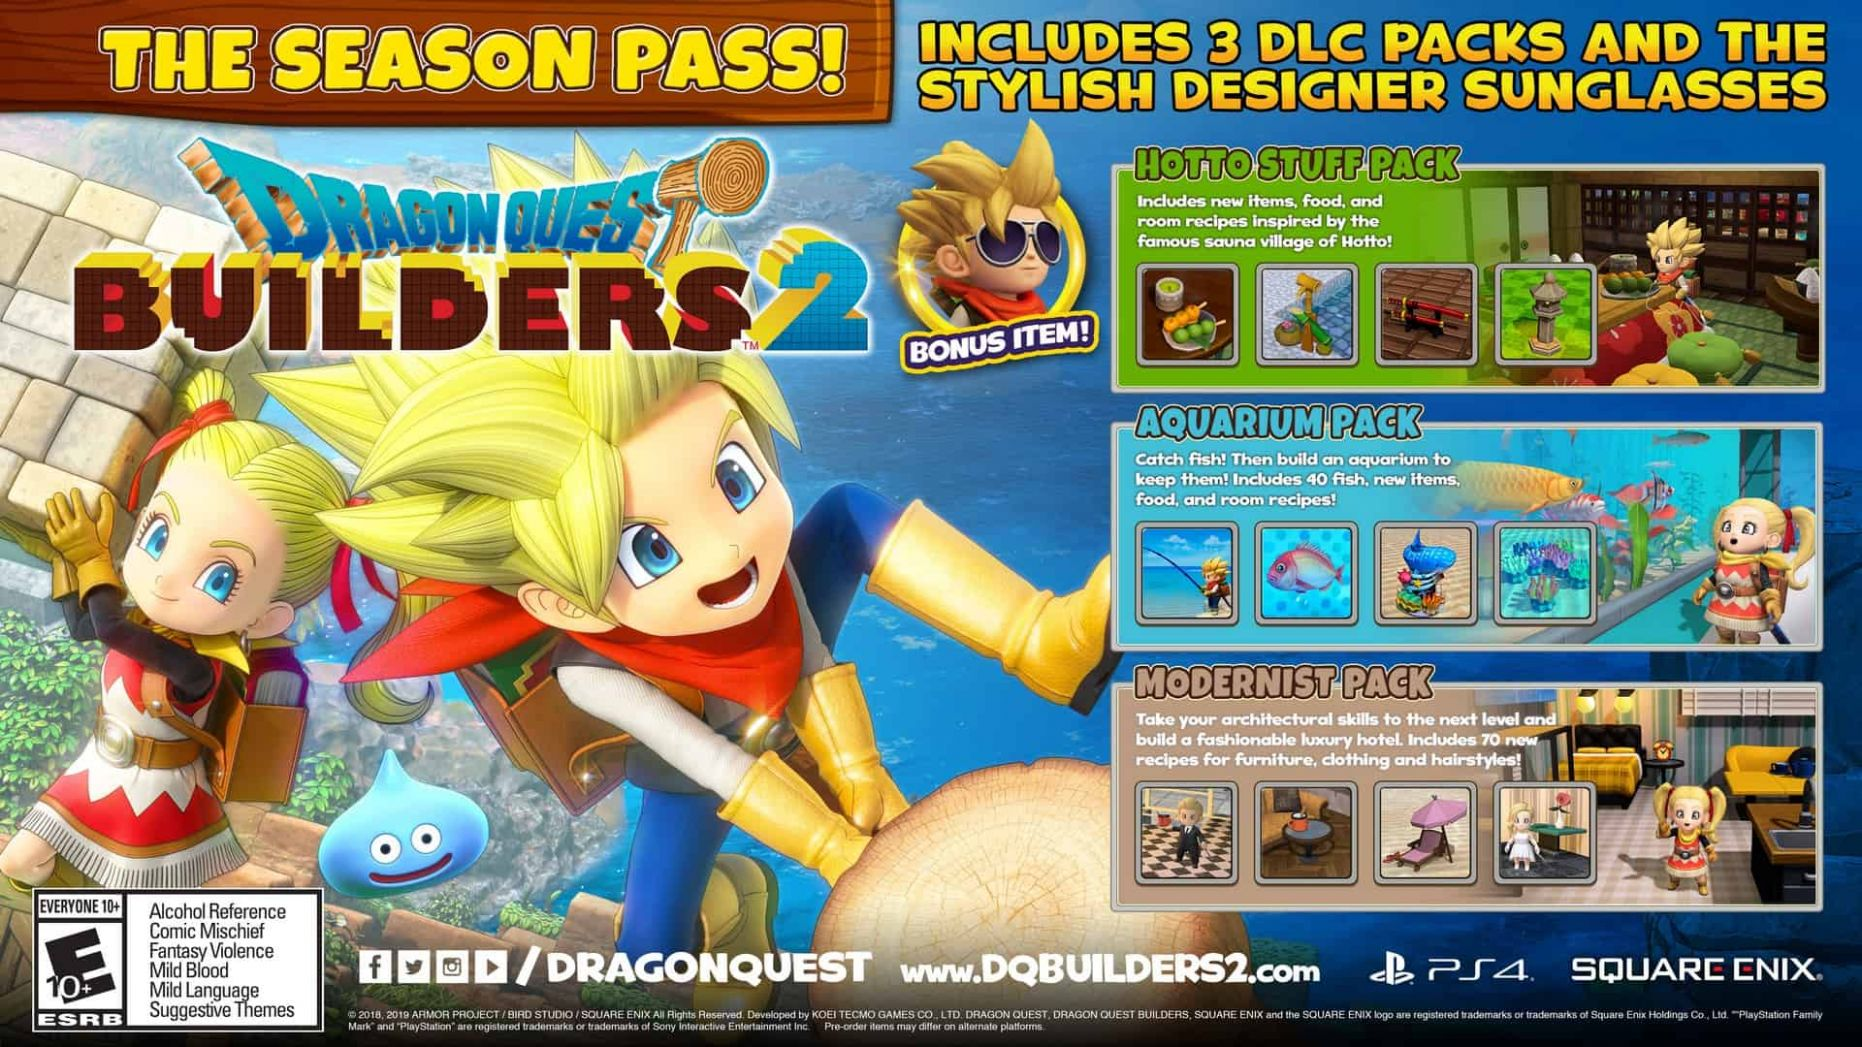 Dragon Quest Builders 11 Gets Even Bigger With New Season Pass ...